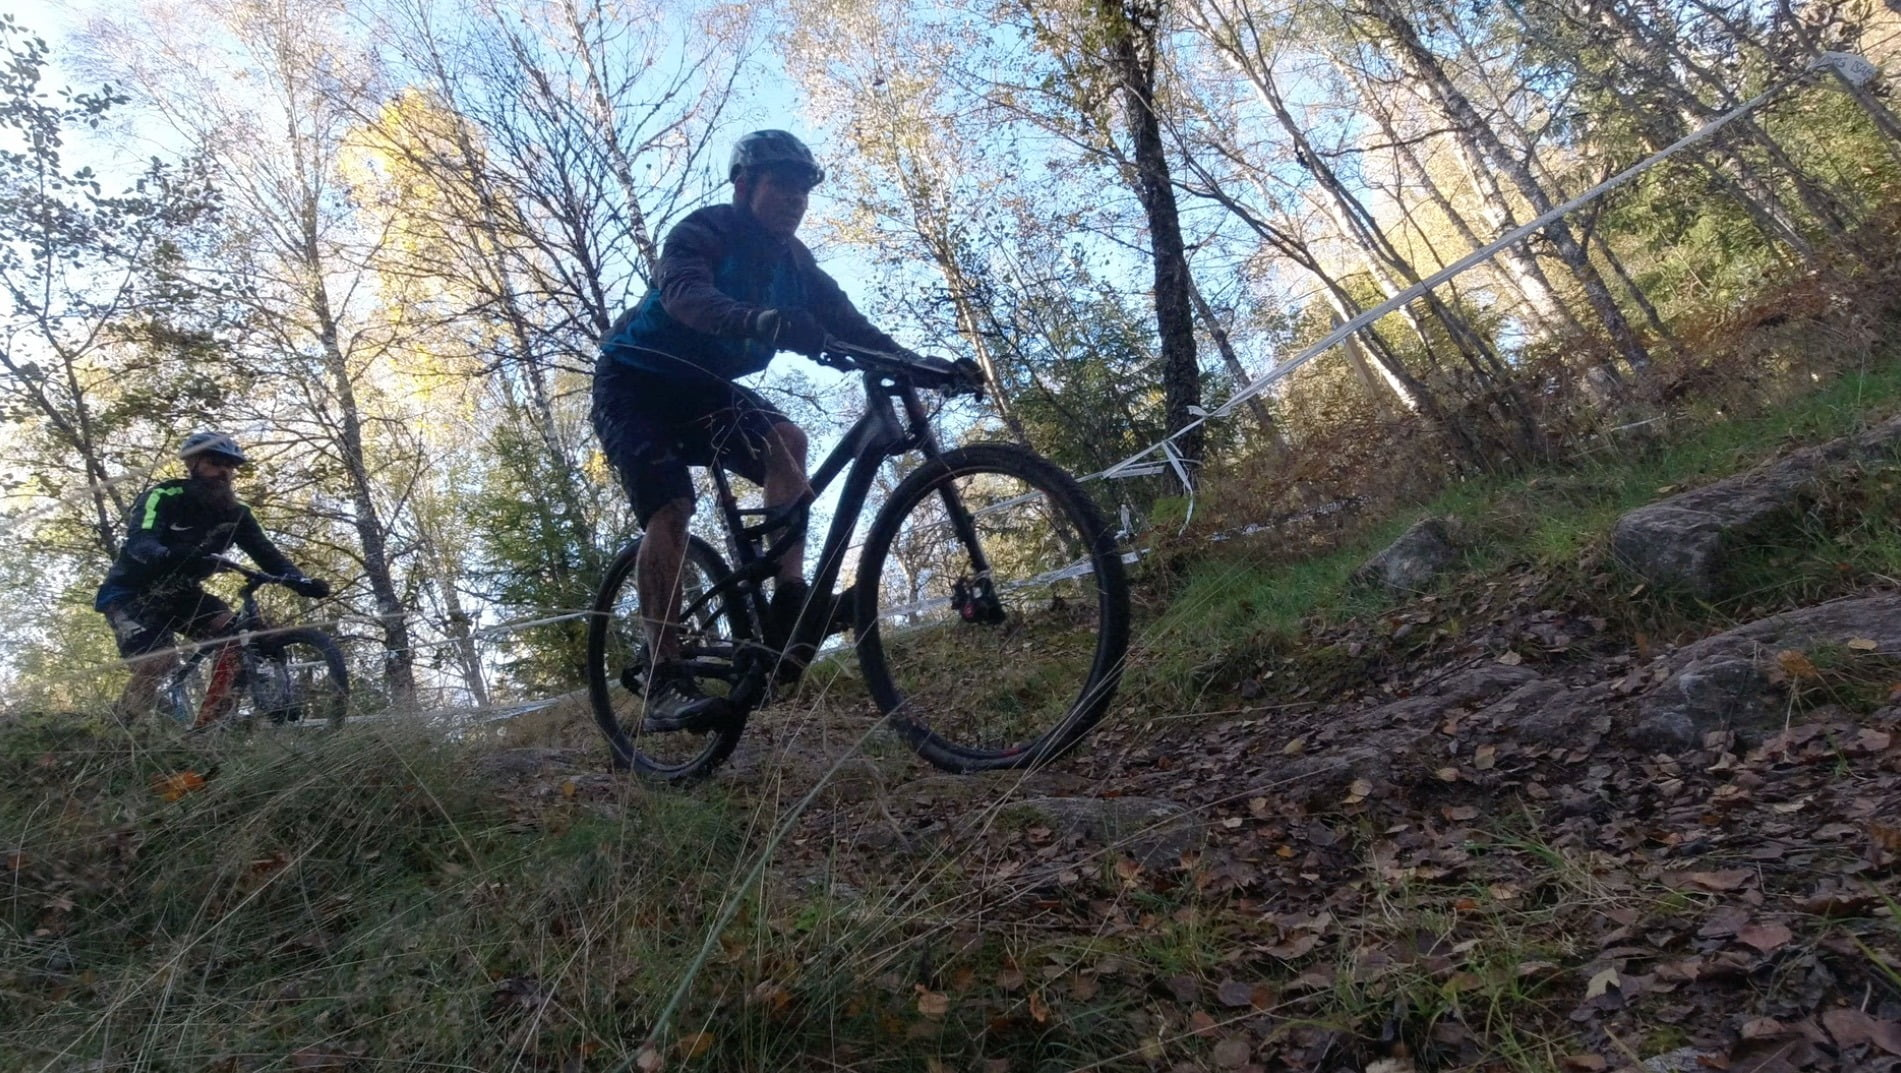 Bicycles--Equipment and supplies, Bicycle helmet, Wheel, Tire, Plant